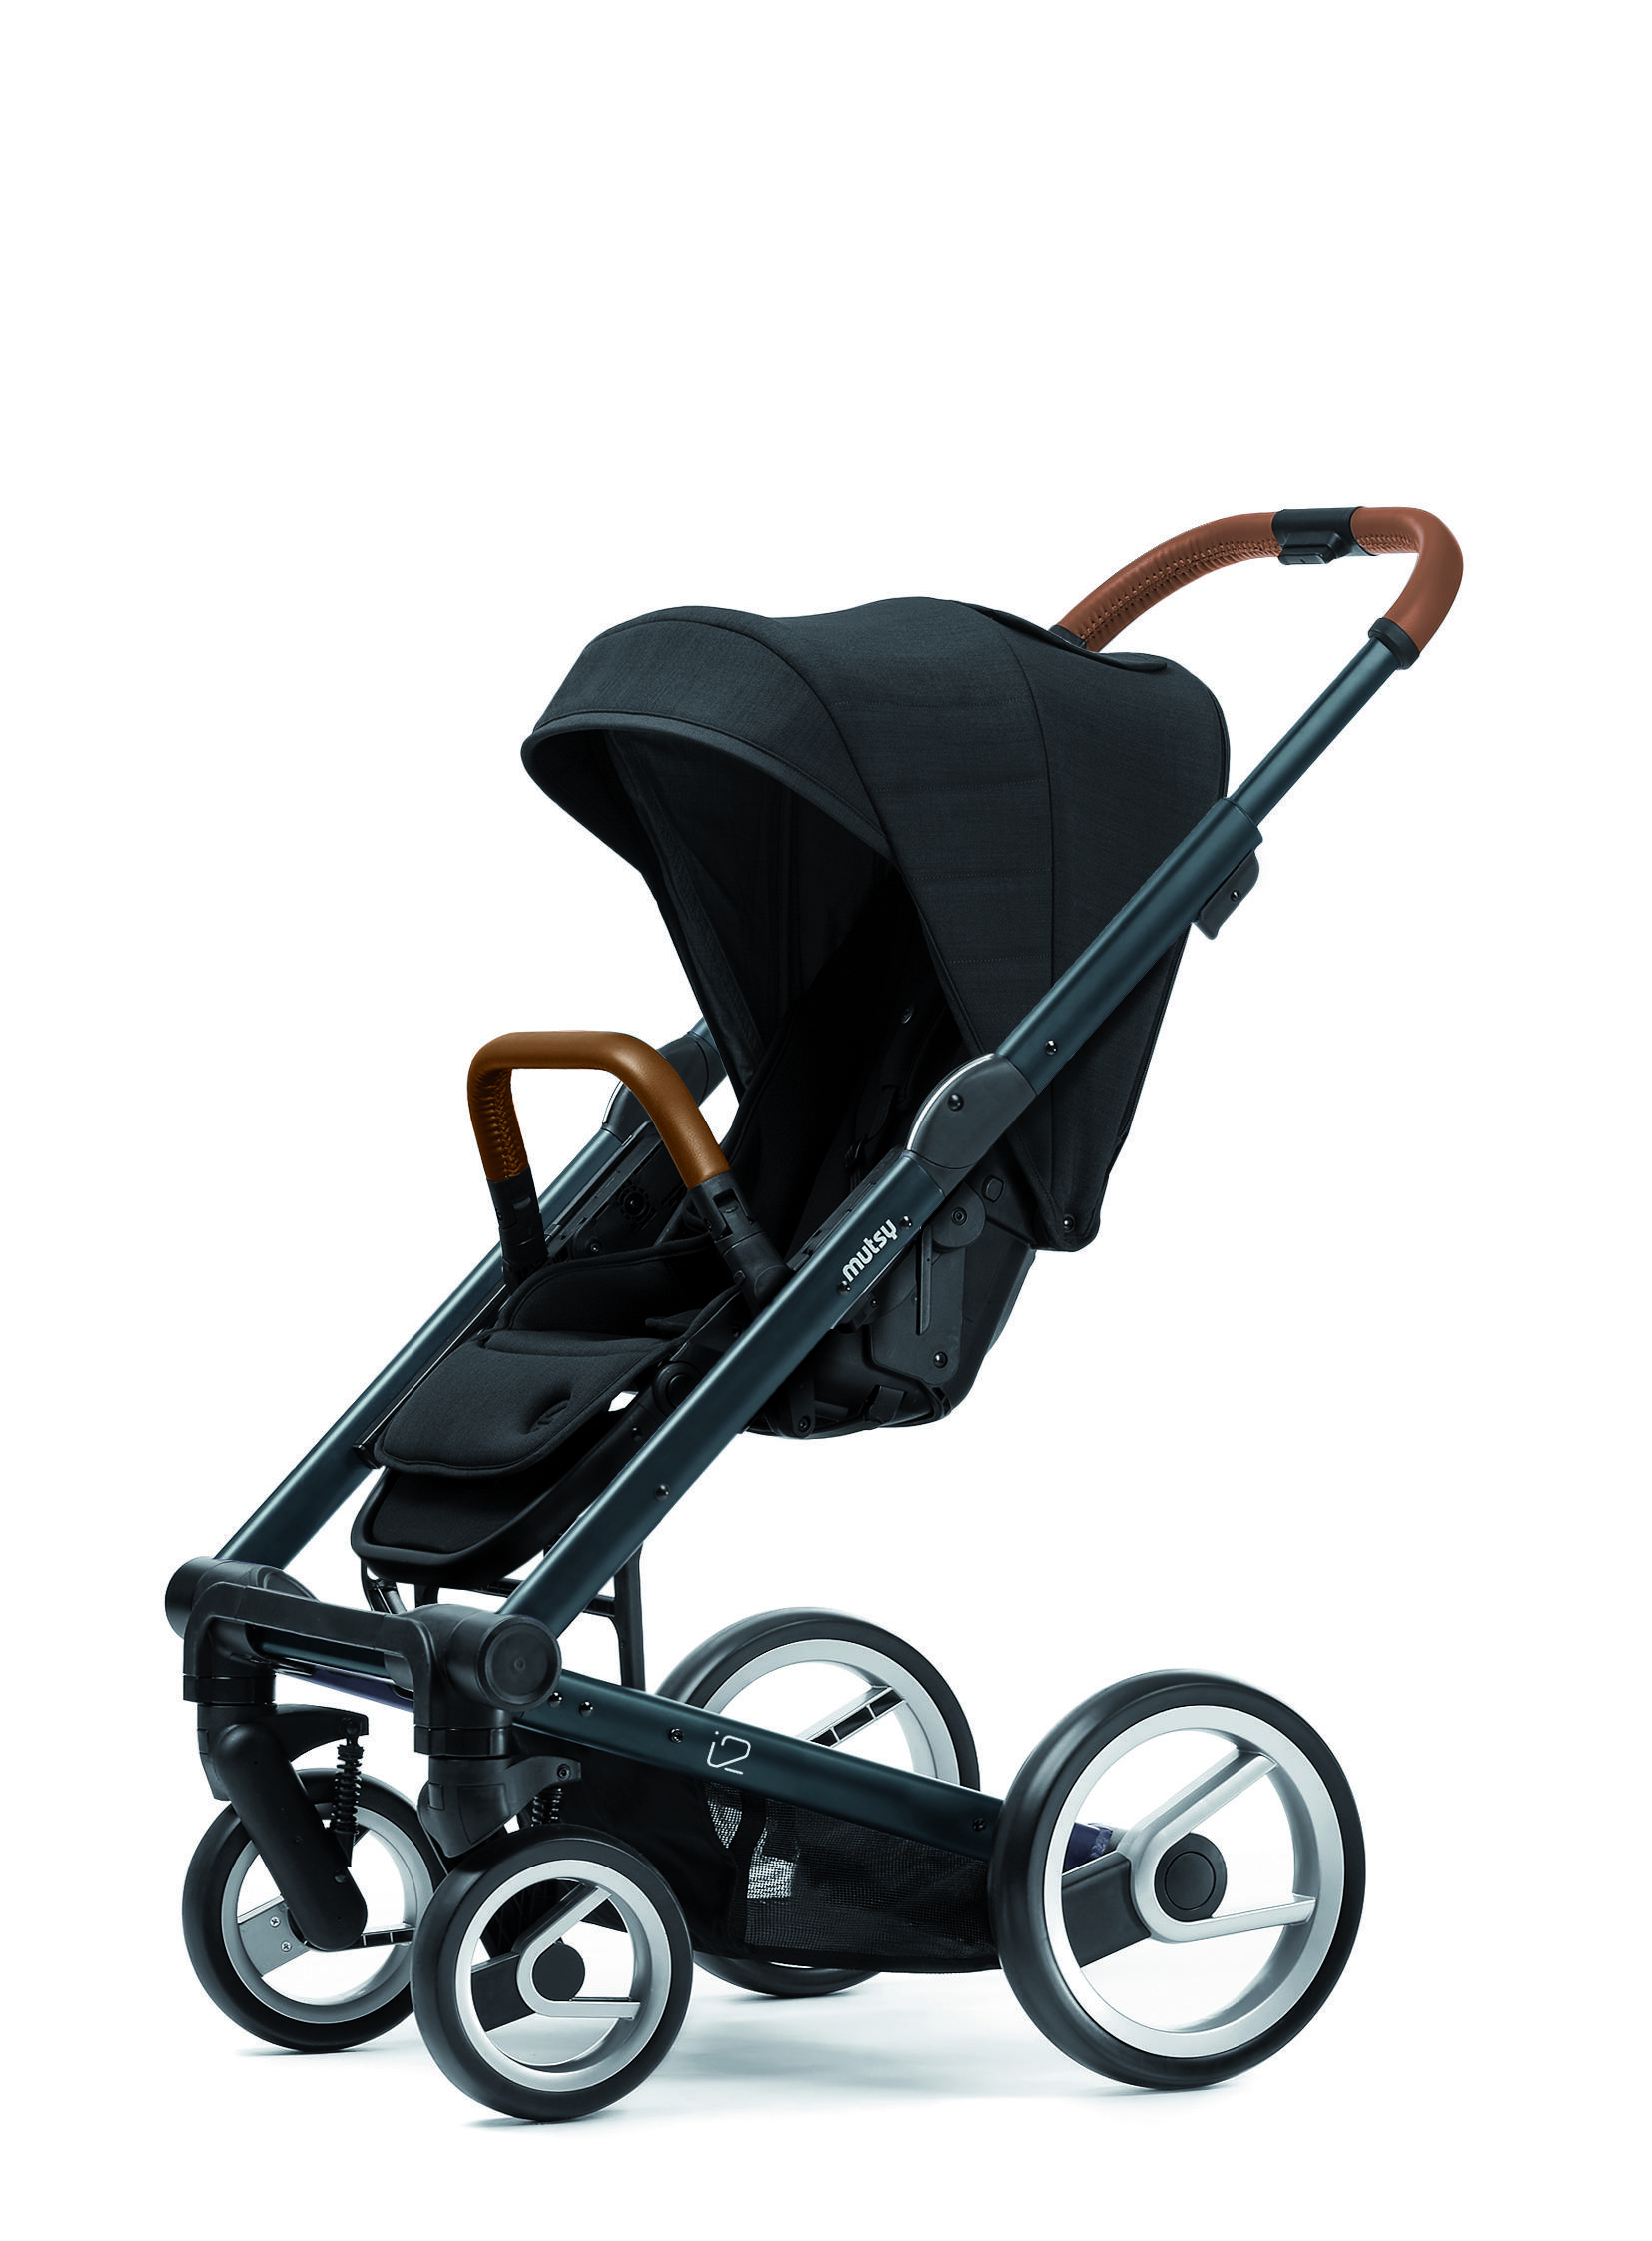 Mutsy SEAT+CANOPY I2 HERITAGE BLACK - Mutsy